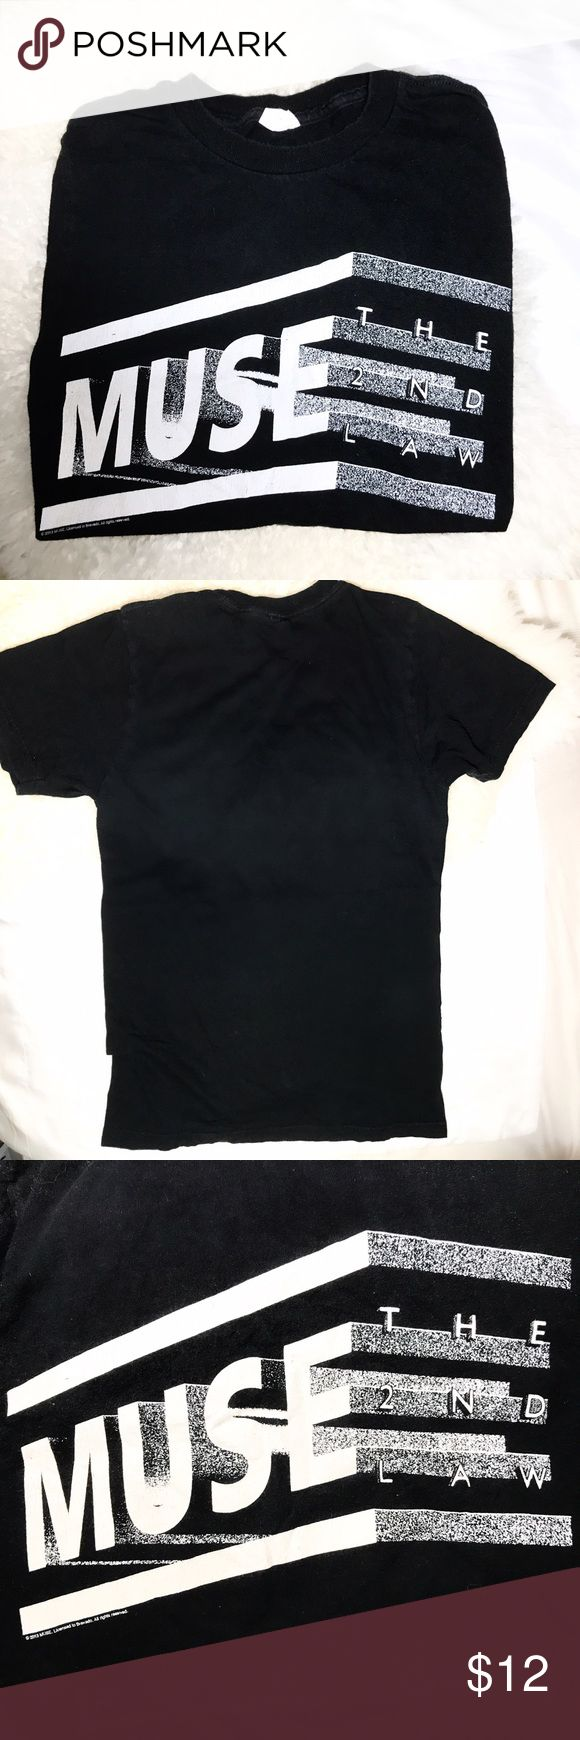 HOT TOPIC Muse The 2nd Law Band T-Shirt This t-shirt is a band t-shirt for the band Muse promoting their album, The 2nd Law. This shirt was purchased at Hot Topic, and though it was well-loved, is in quite good condition. This shirt is a size Small. Tops Tees - Short Sleeve